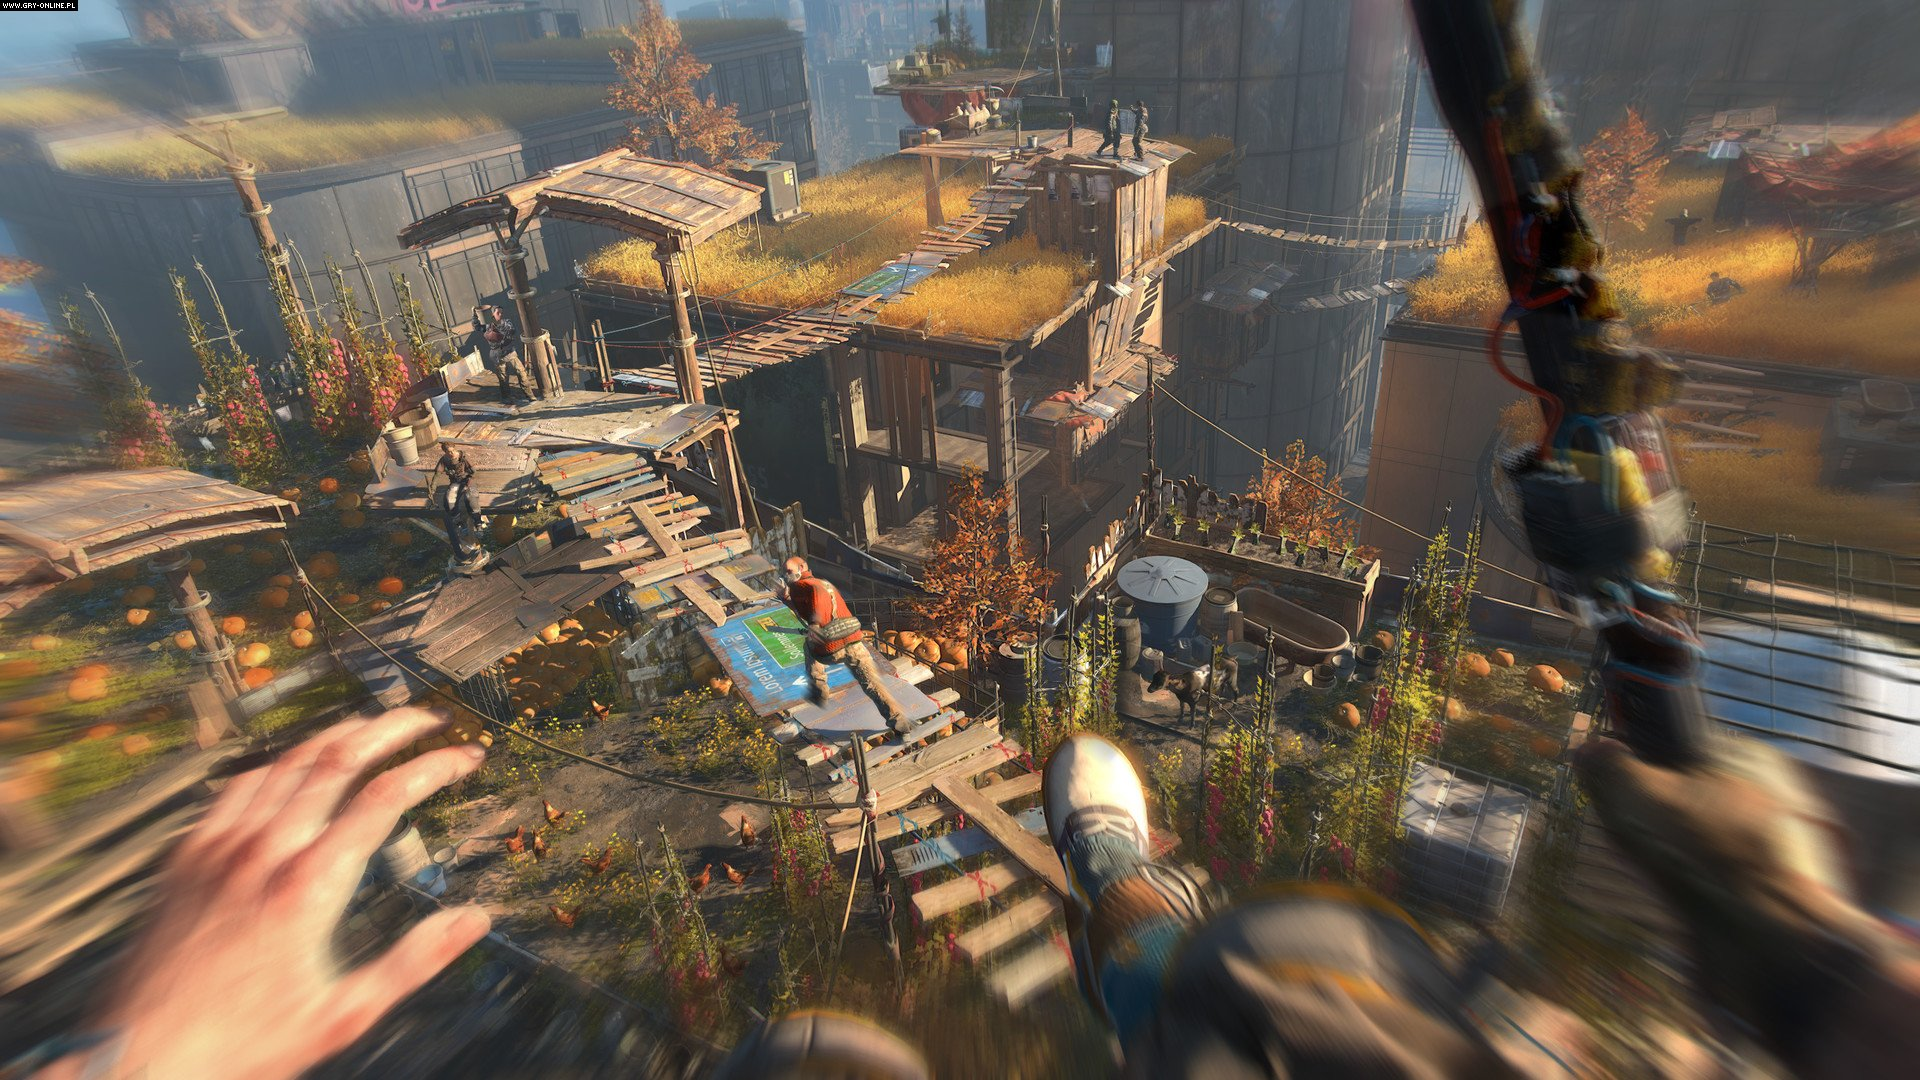 Dying Light 2 PC, PS4, XONE Gry Screen 2/21, Techland